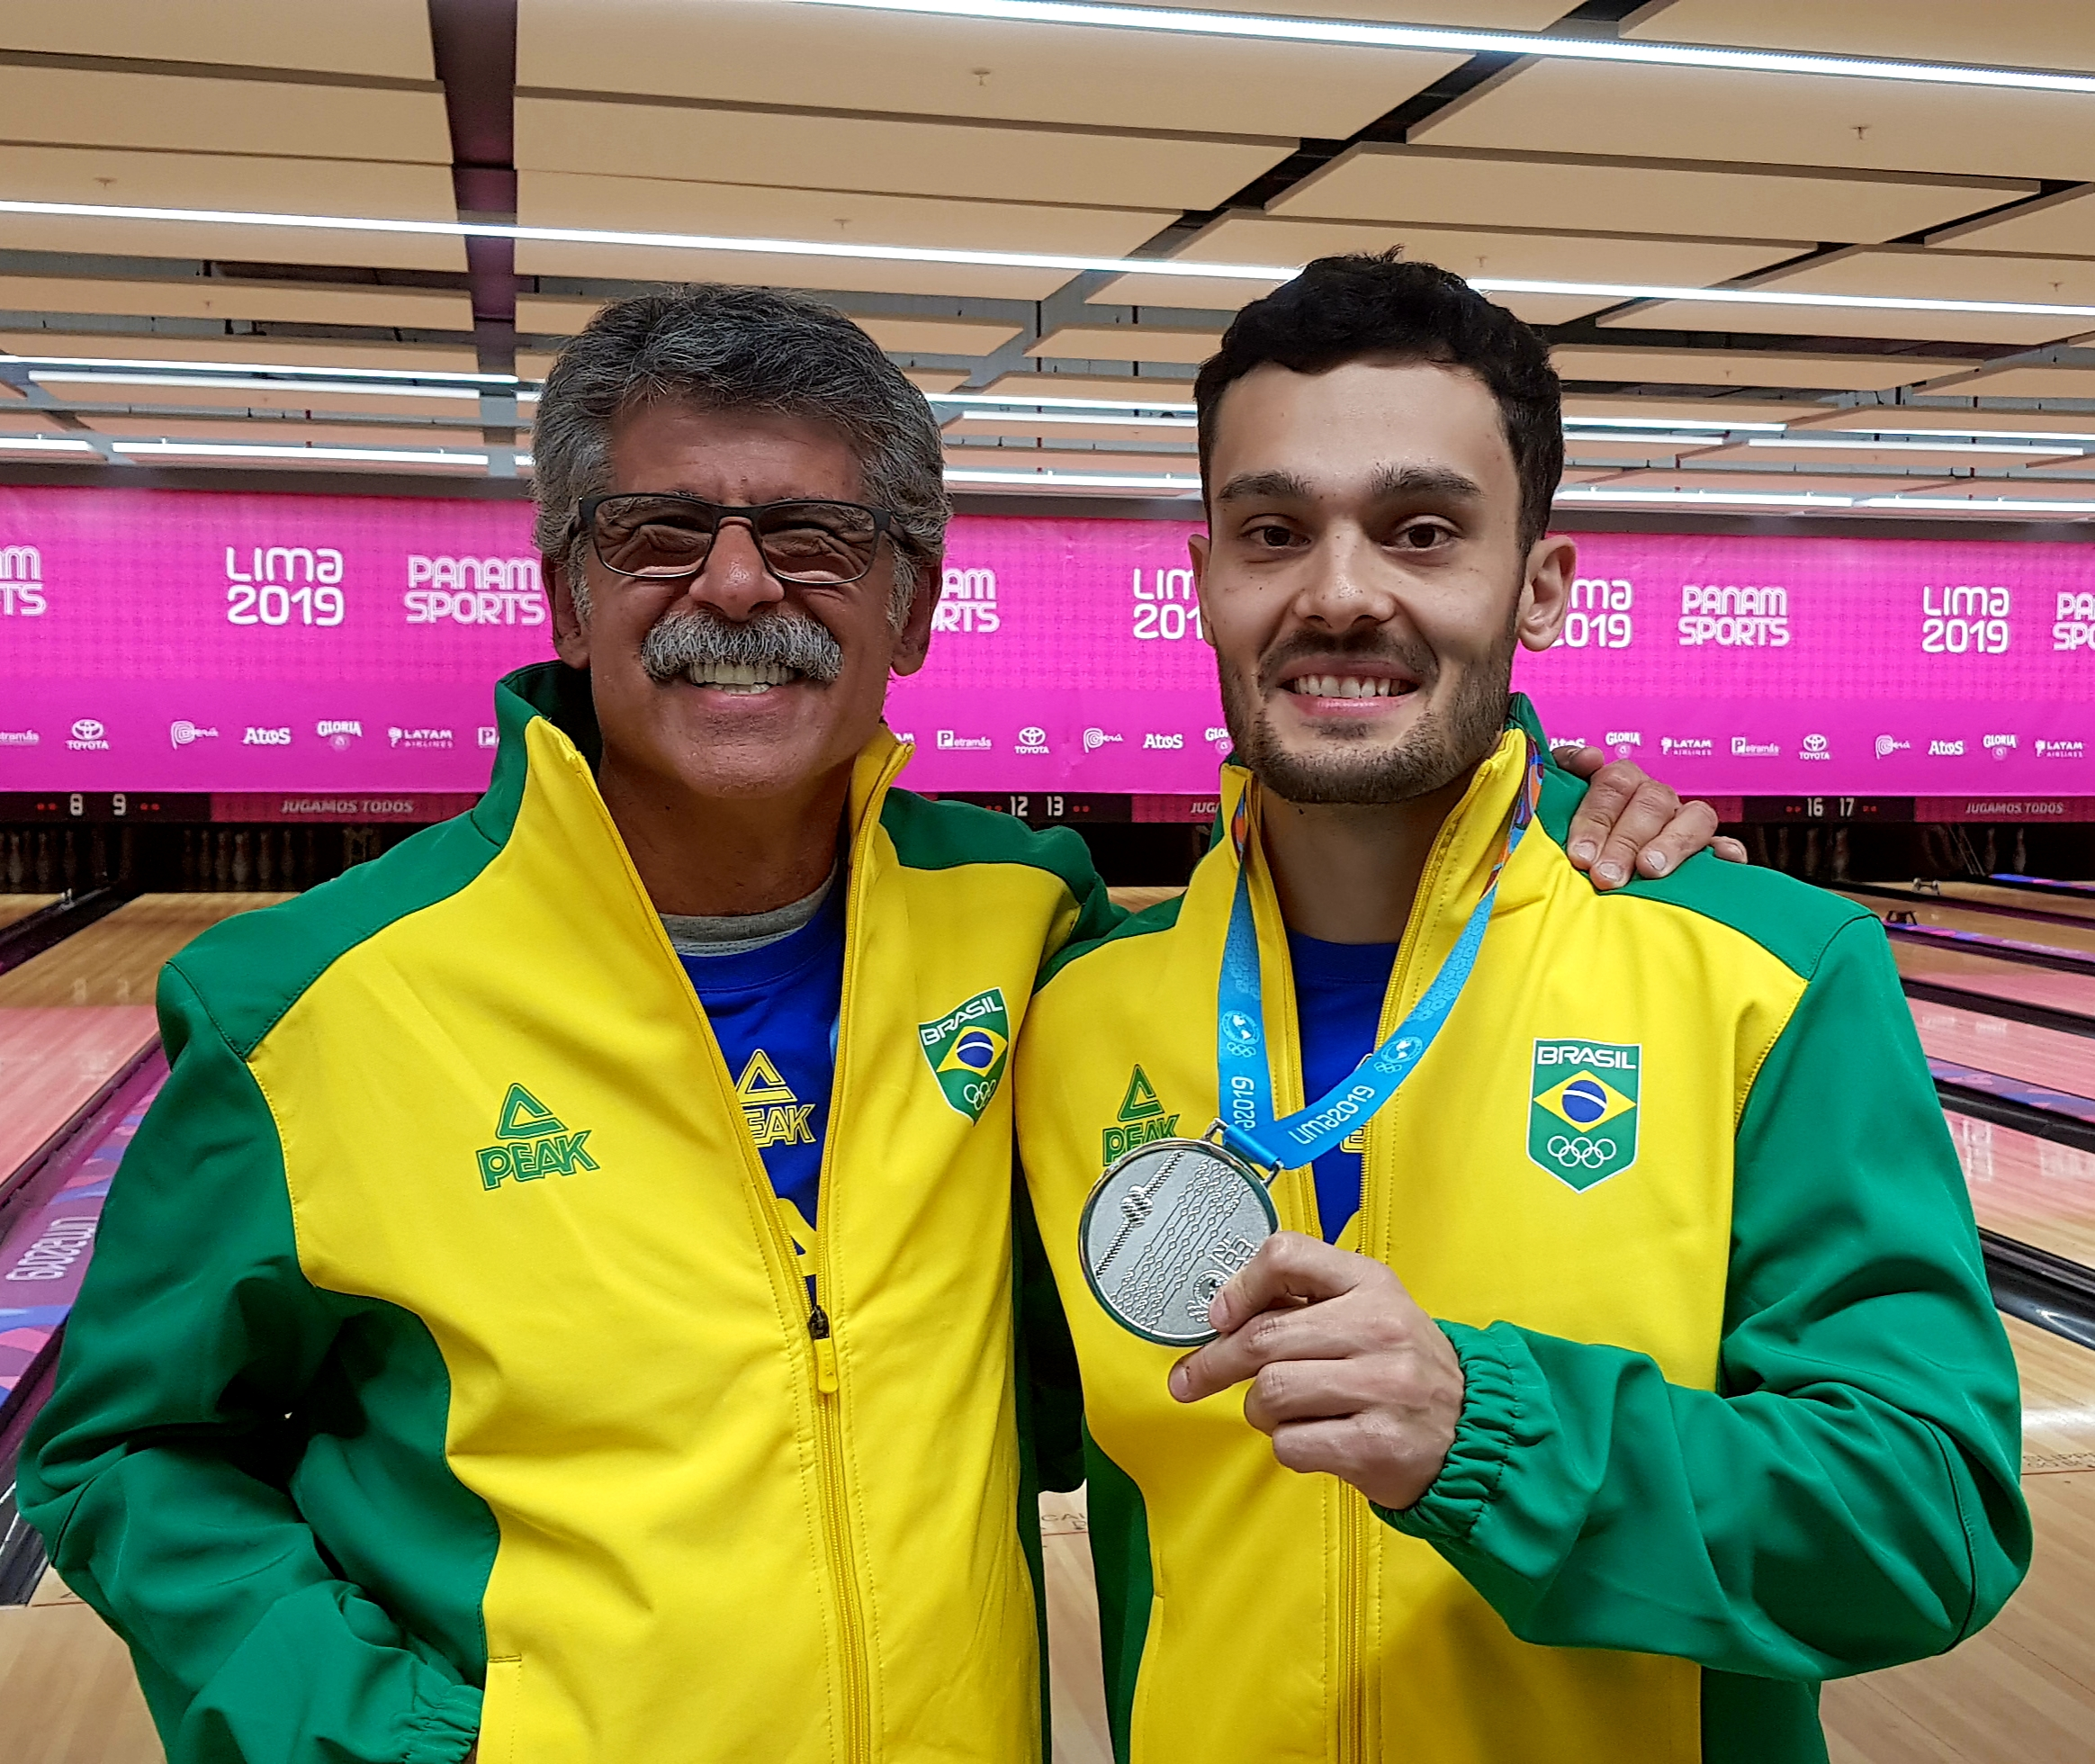 Márcio Vieira (atleta do Vasco e técnico do Brasil) e Marcelo Suartz (atleta do Vasco) com a medalha de prata do Pan 2019